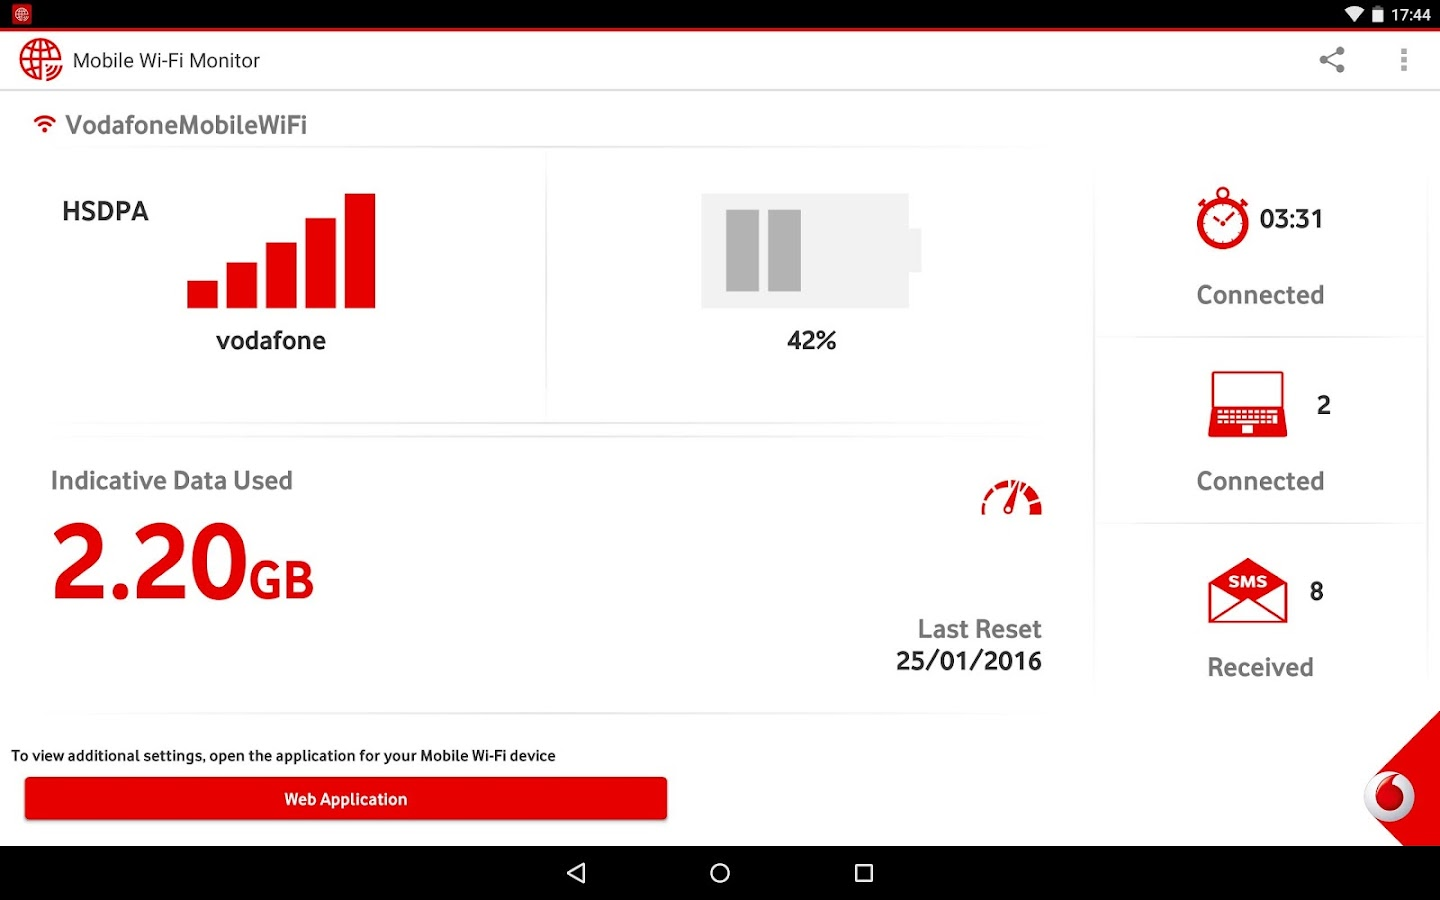 Vodafone Mobile Wifi Monitor Screenshot